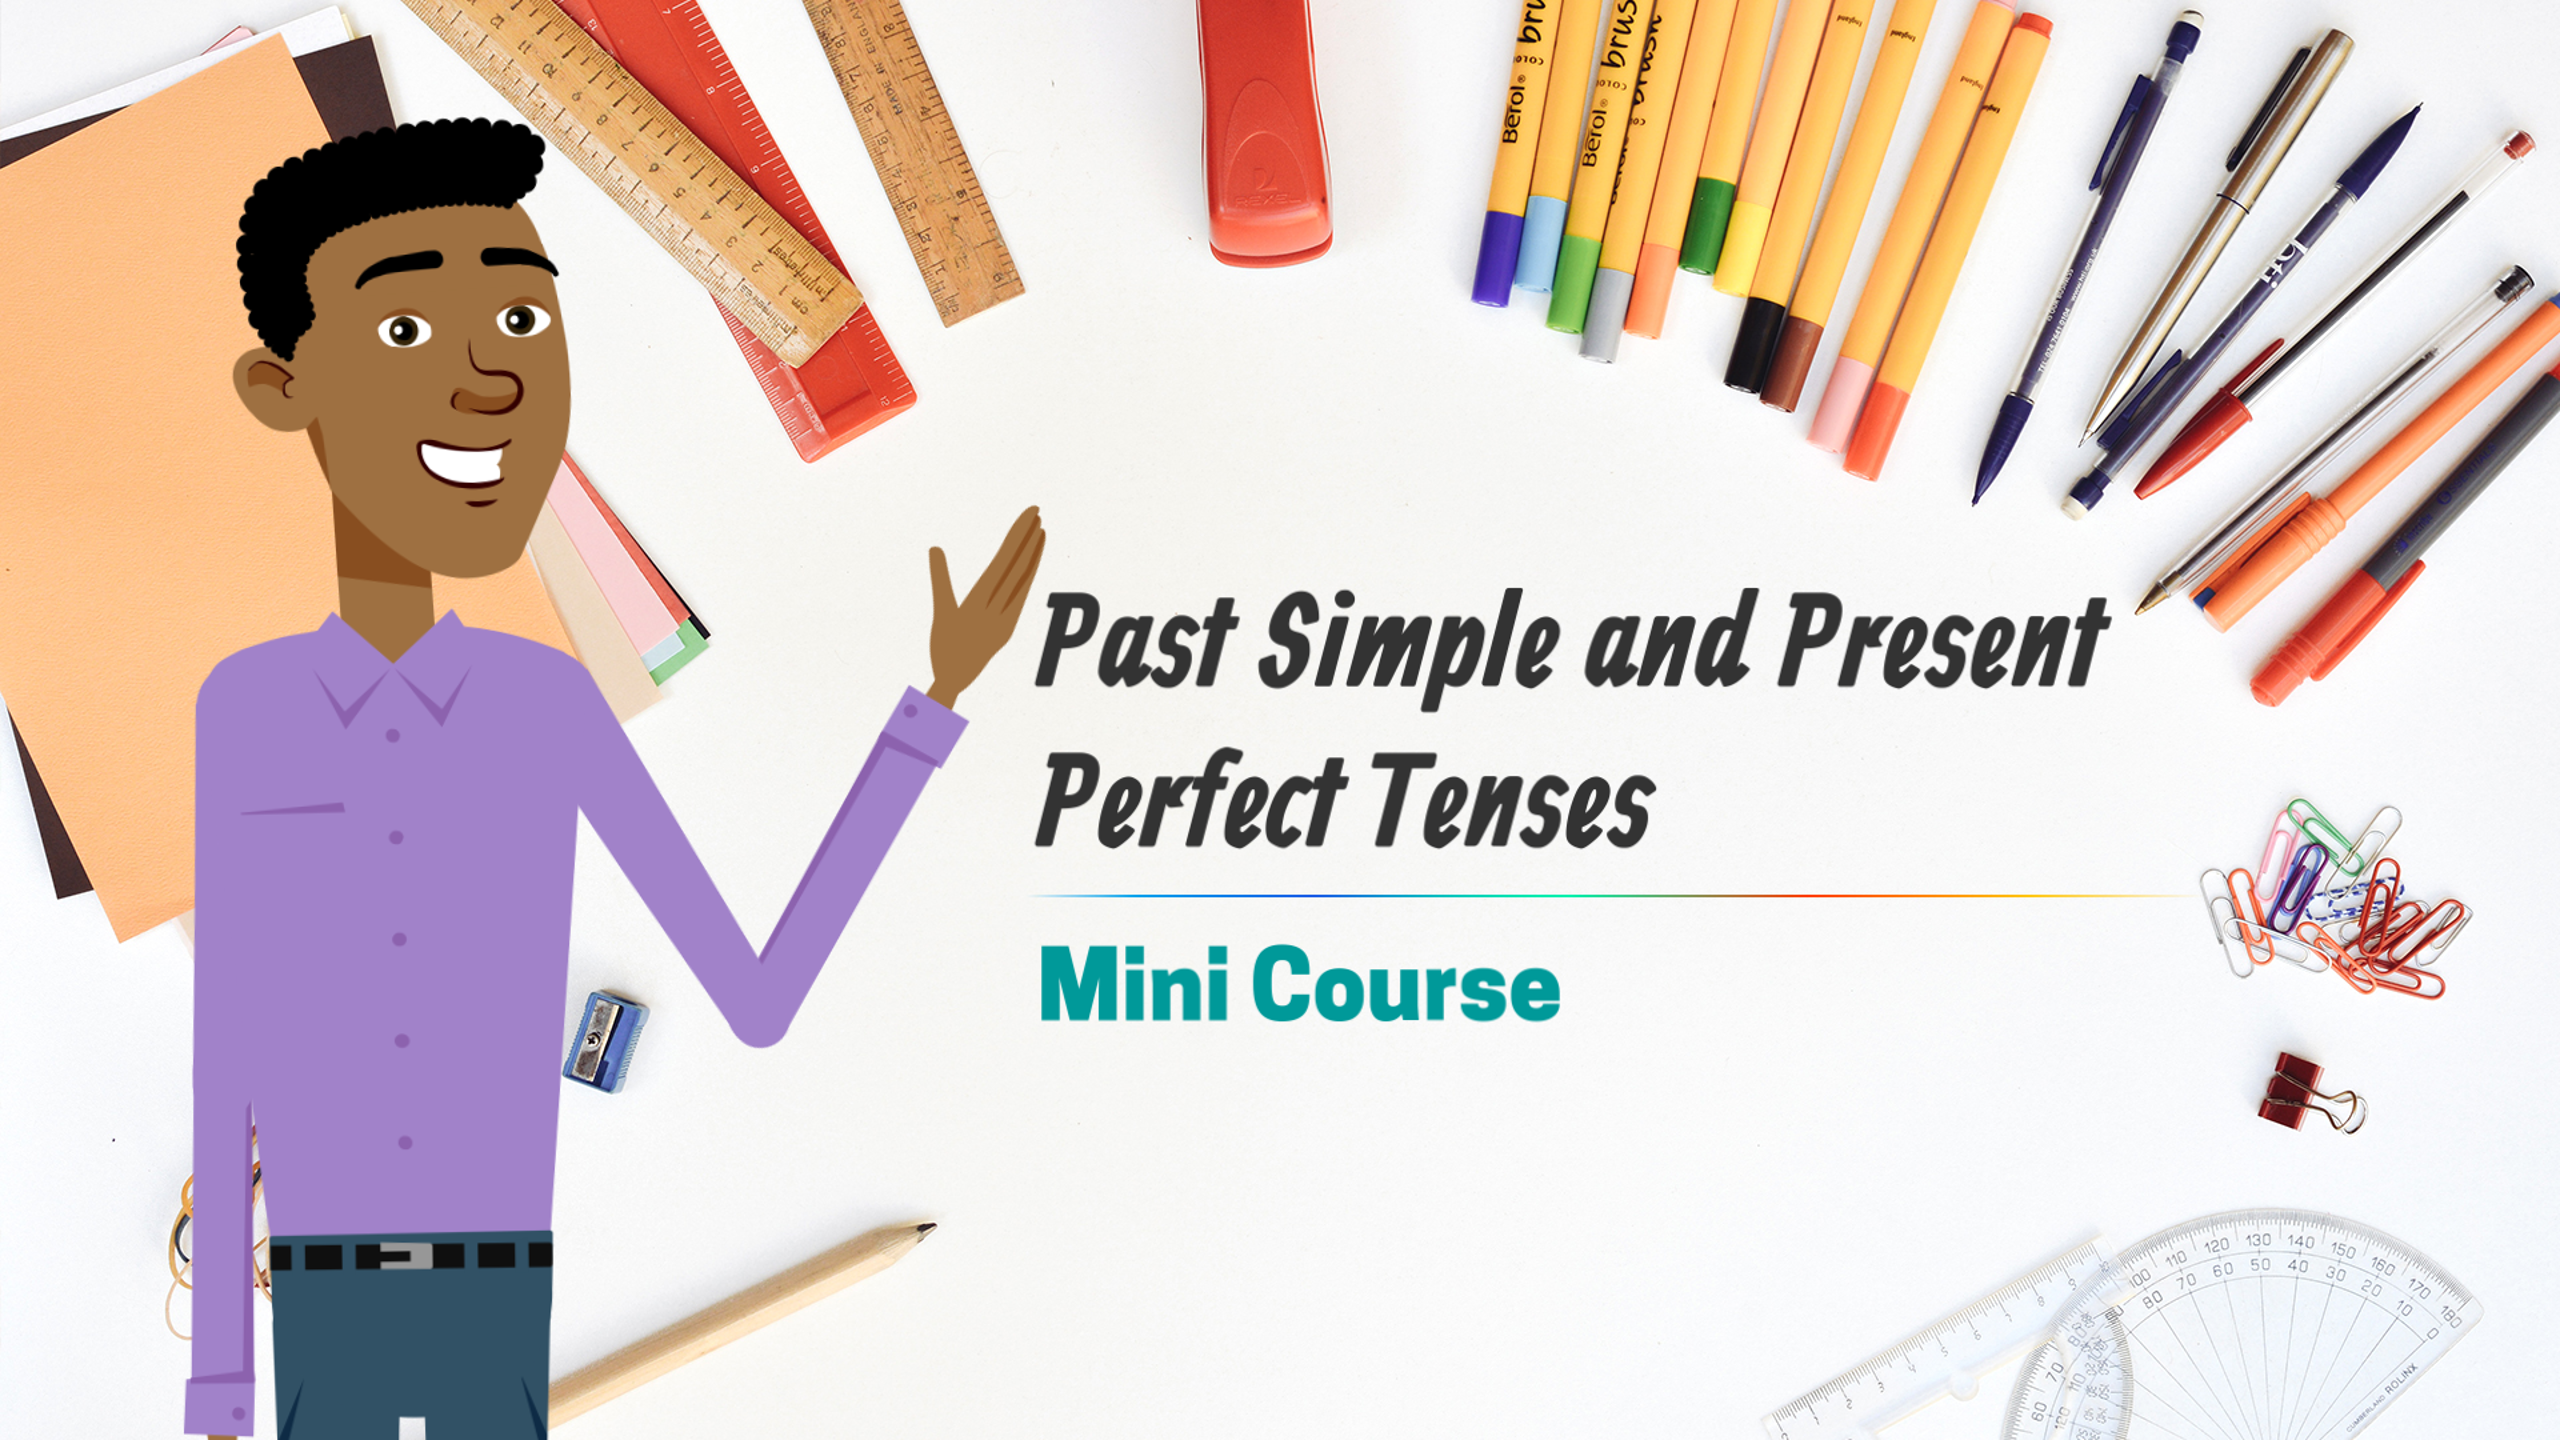 Past Simple and Present Perfect Tense Mini Course